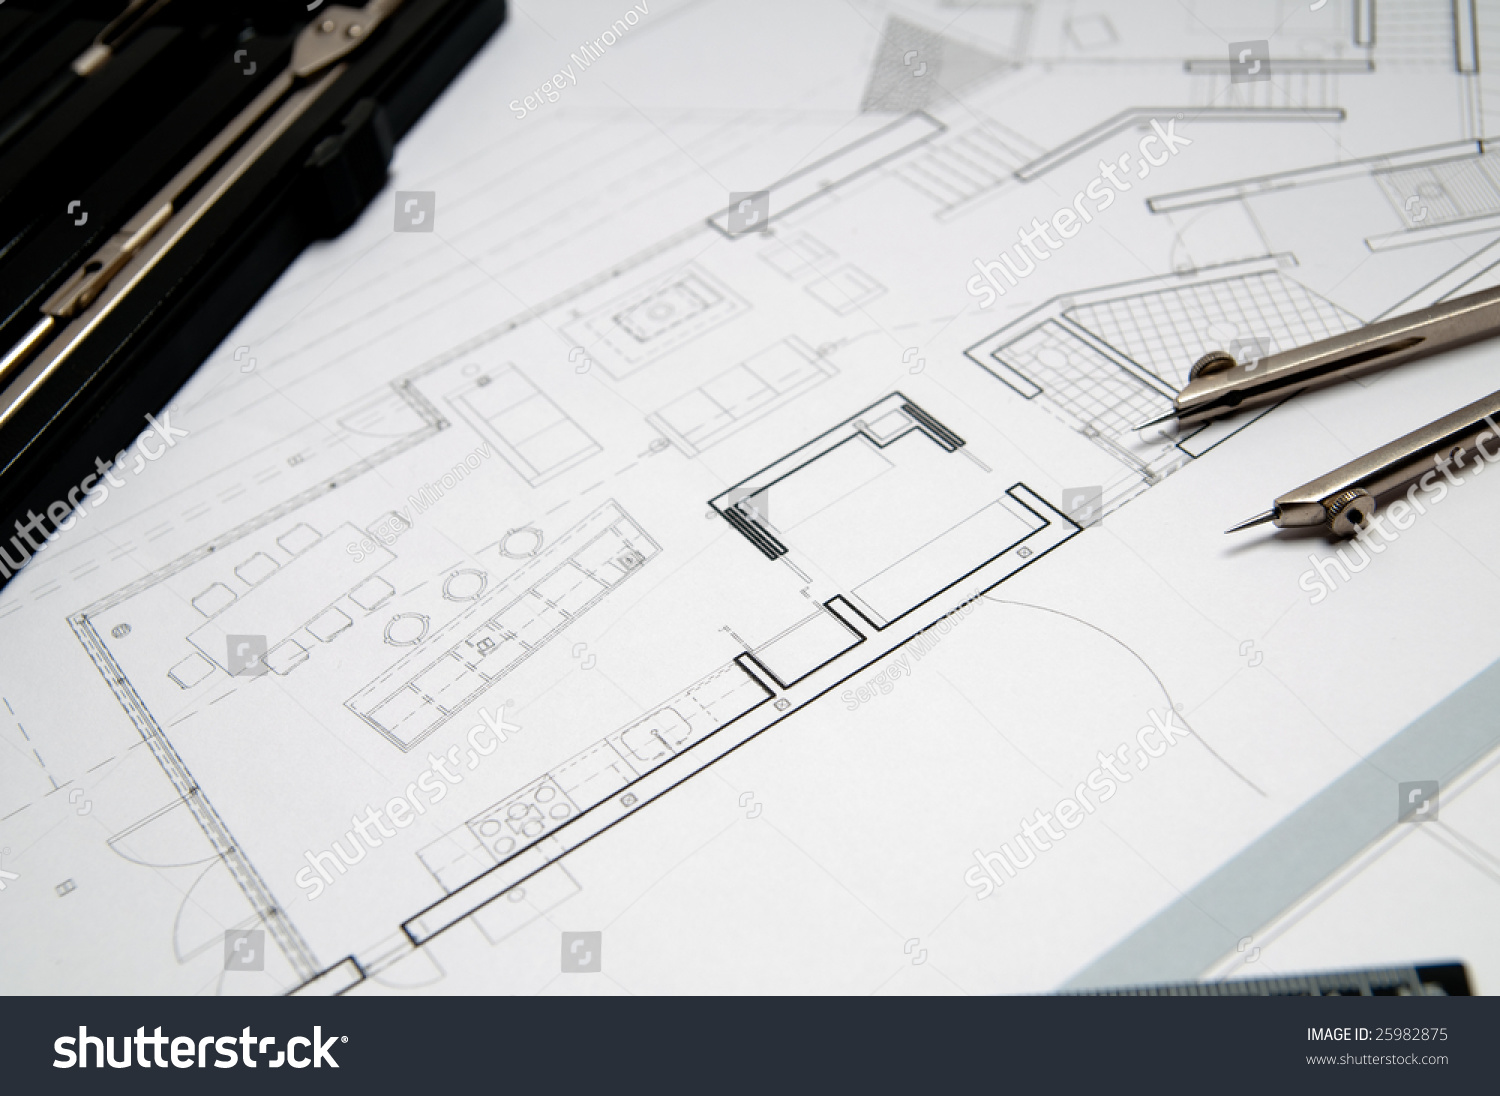 Architecture blueprint tools stock photo 25982875 shutterstock architecture blueprint tools malvernweather Image collections